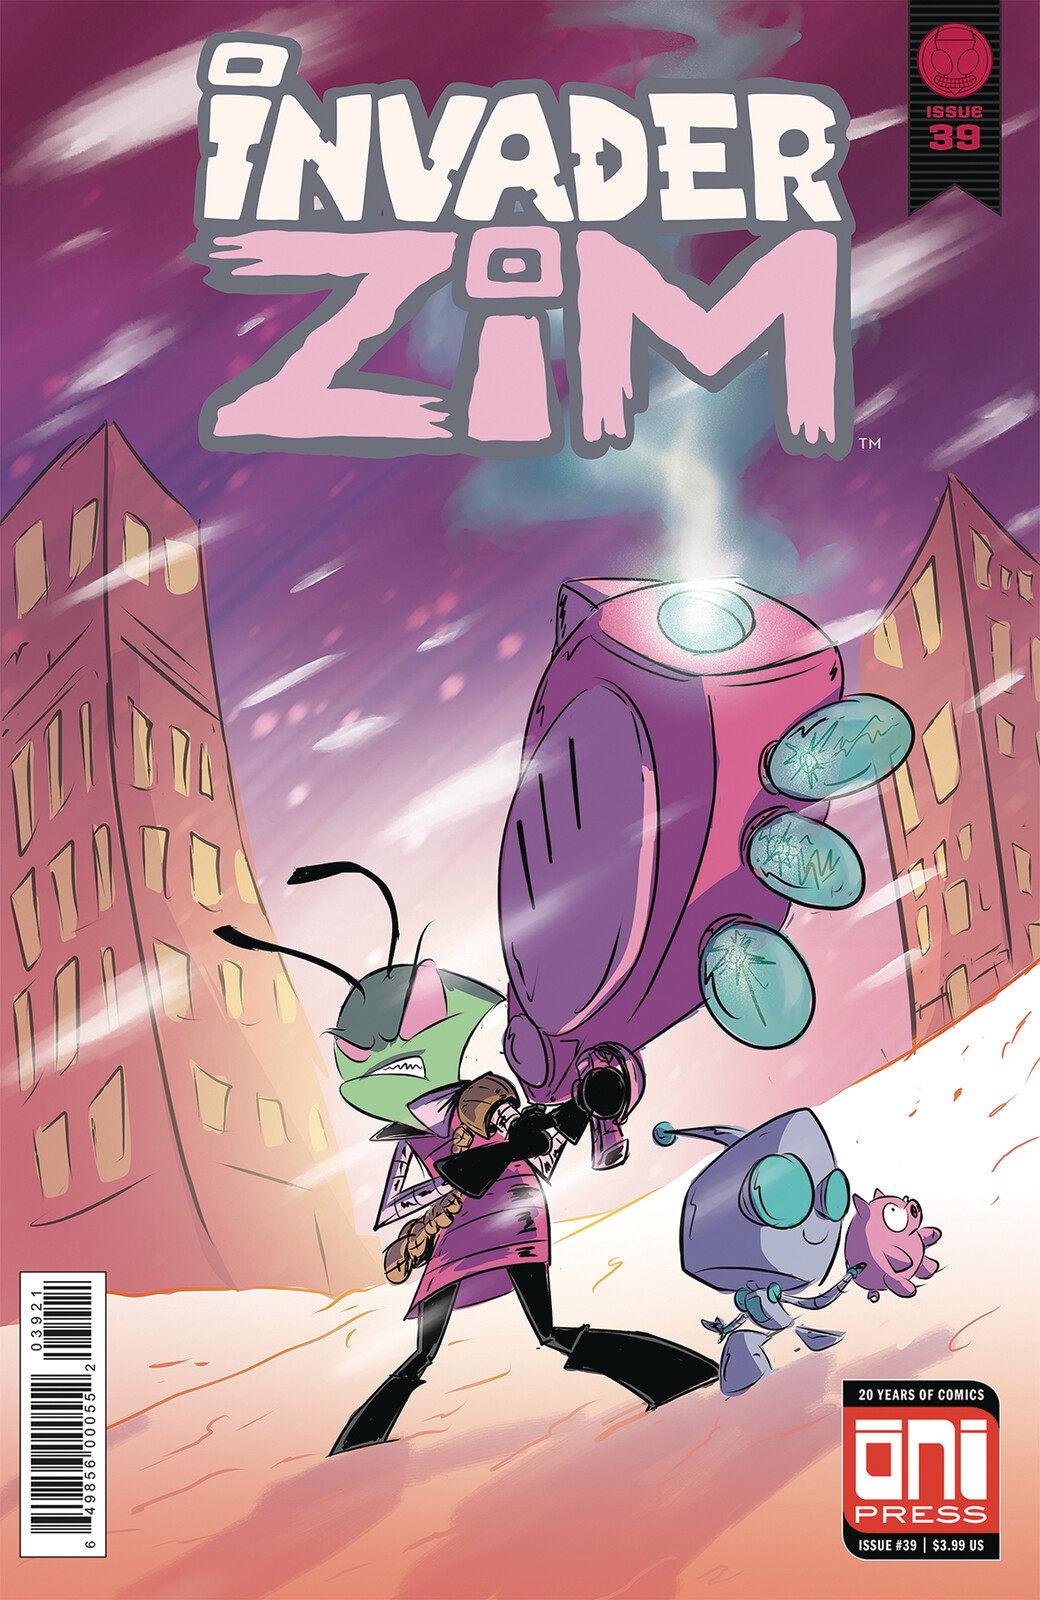 Invader Zim Cover done for Oni Press